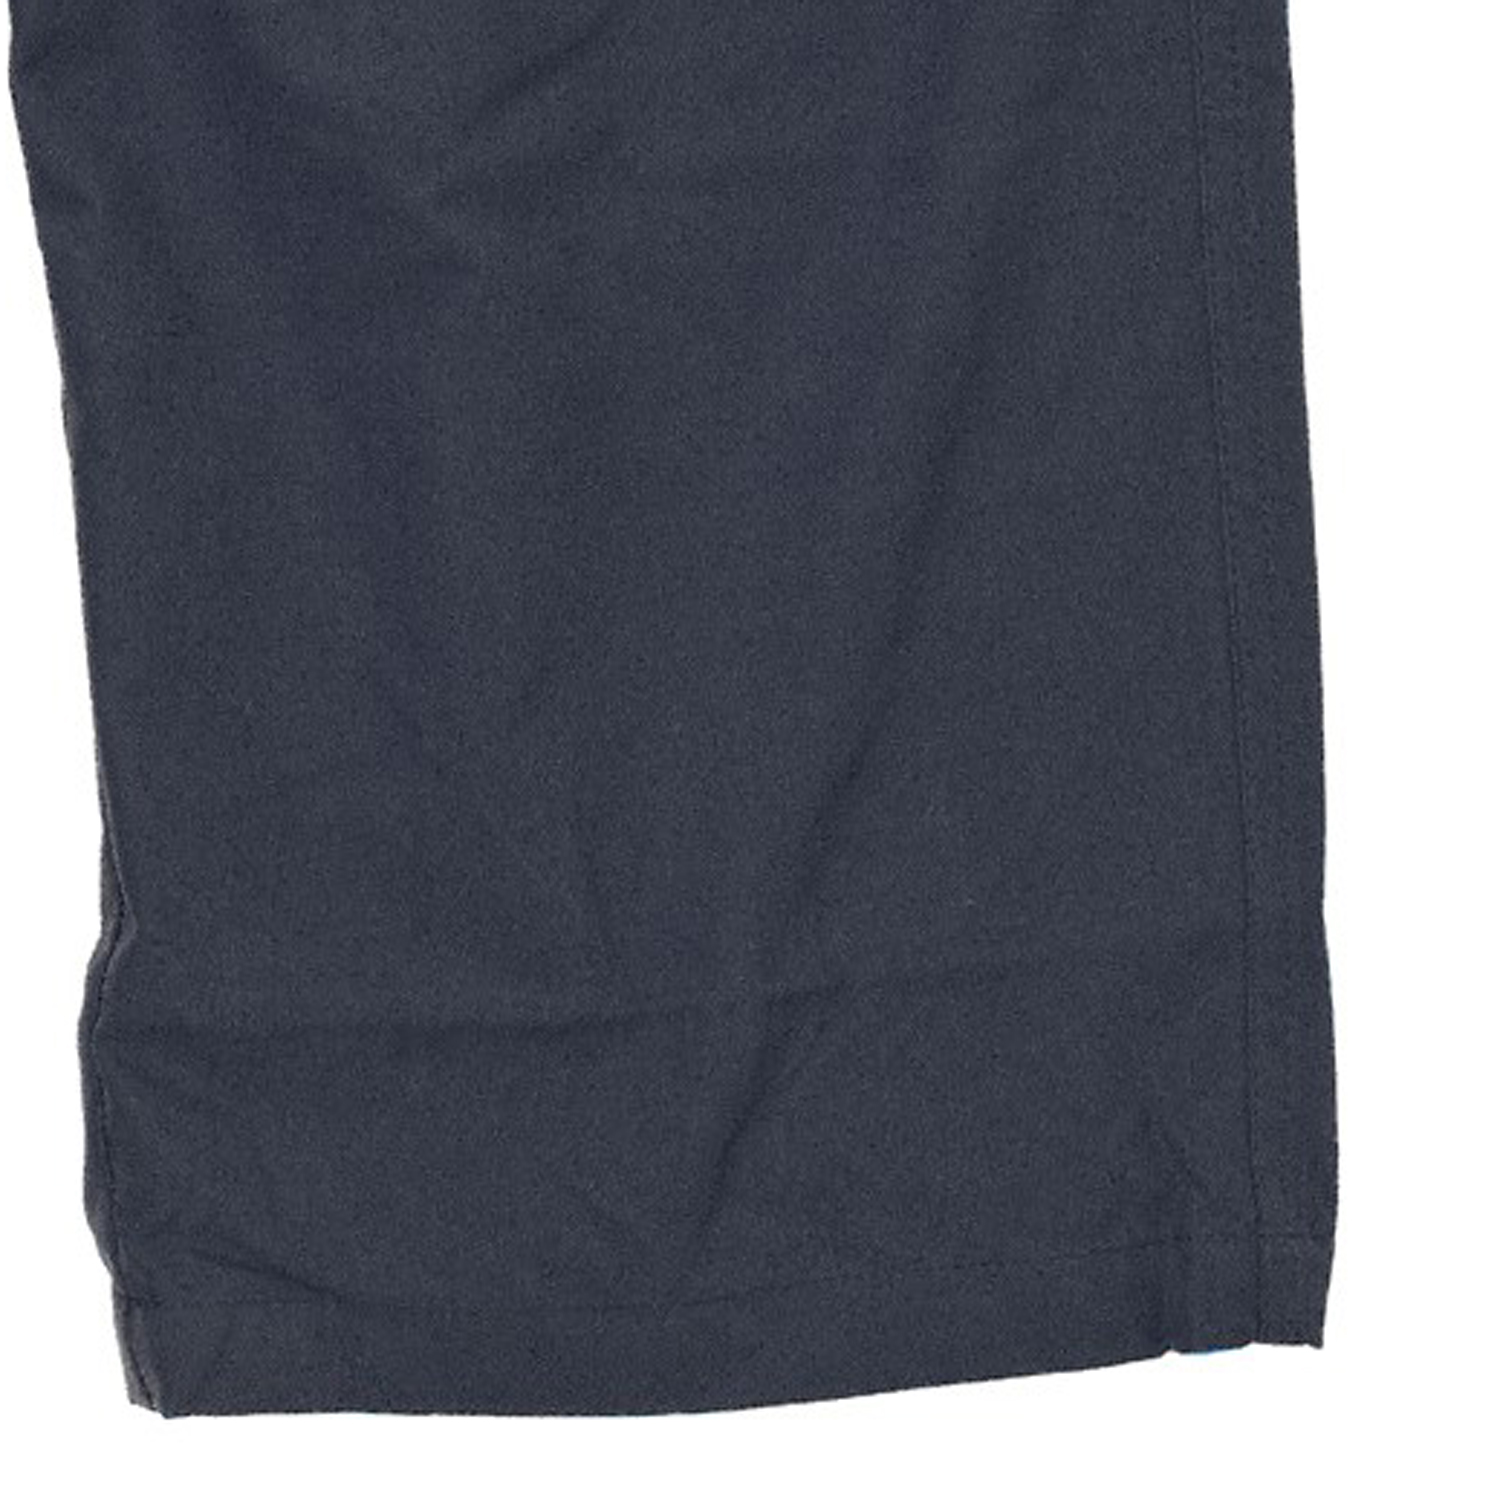 Detail Image to Dark blue micro fitness Capri by Ahorn Sportswear in oversizes up to 10XL